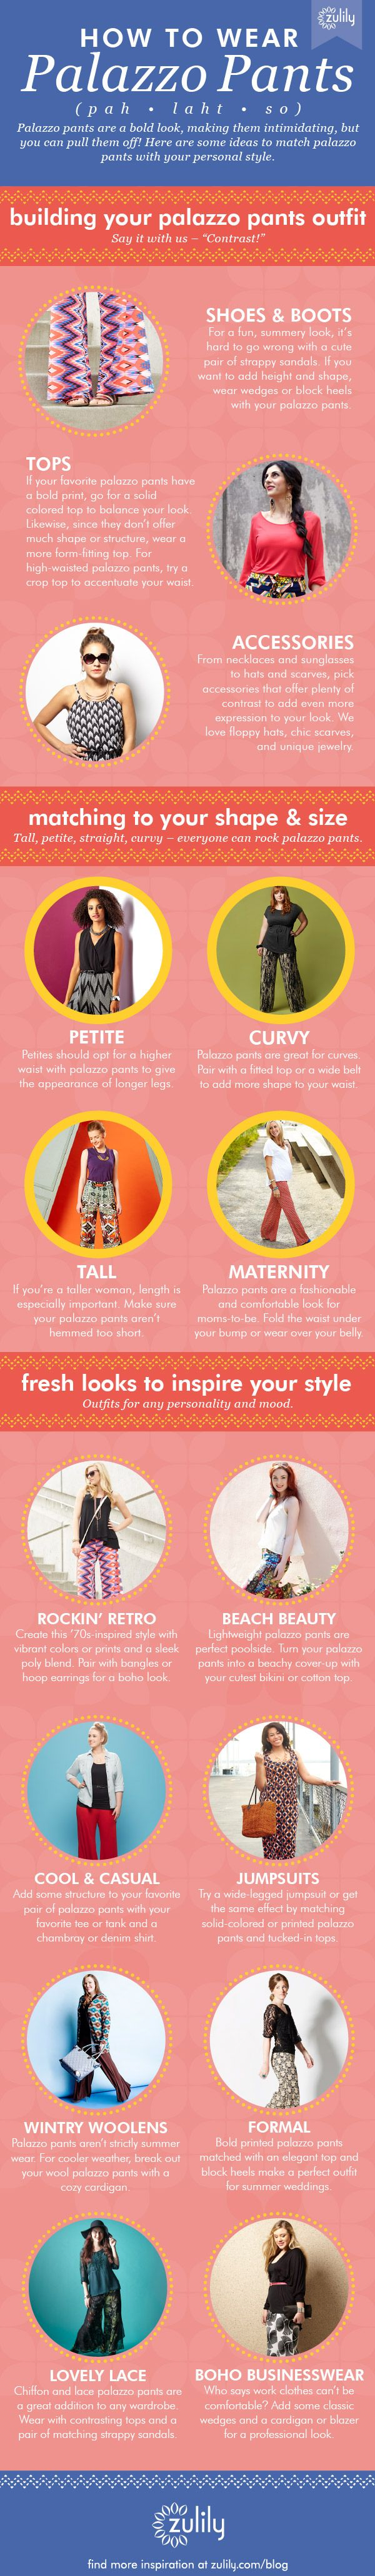 How to Wear Palazzo Pants | Palazzo pants, Palazzo and Bald hairstyles